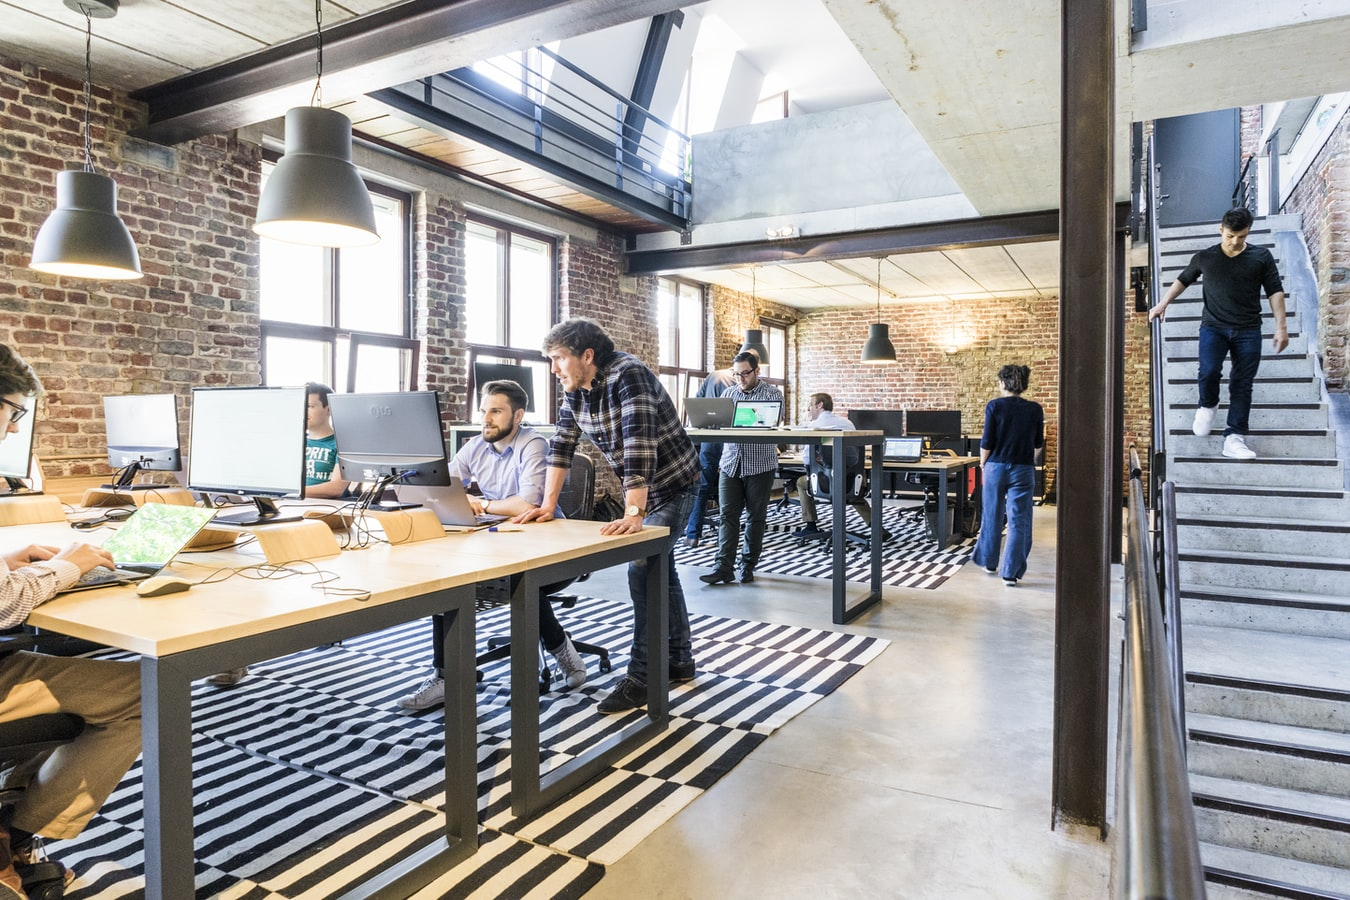 OKR Software for Startups: The Do's and Don'ts